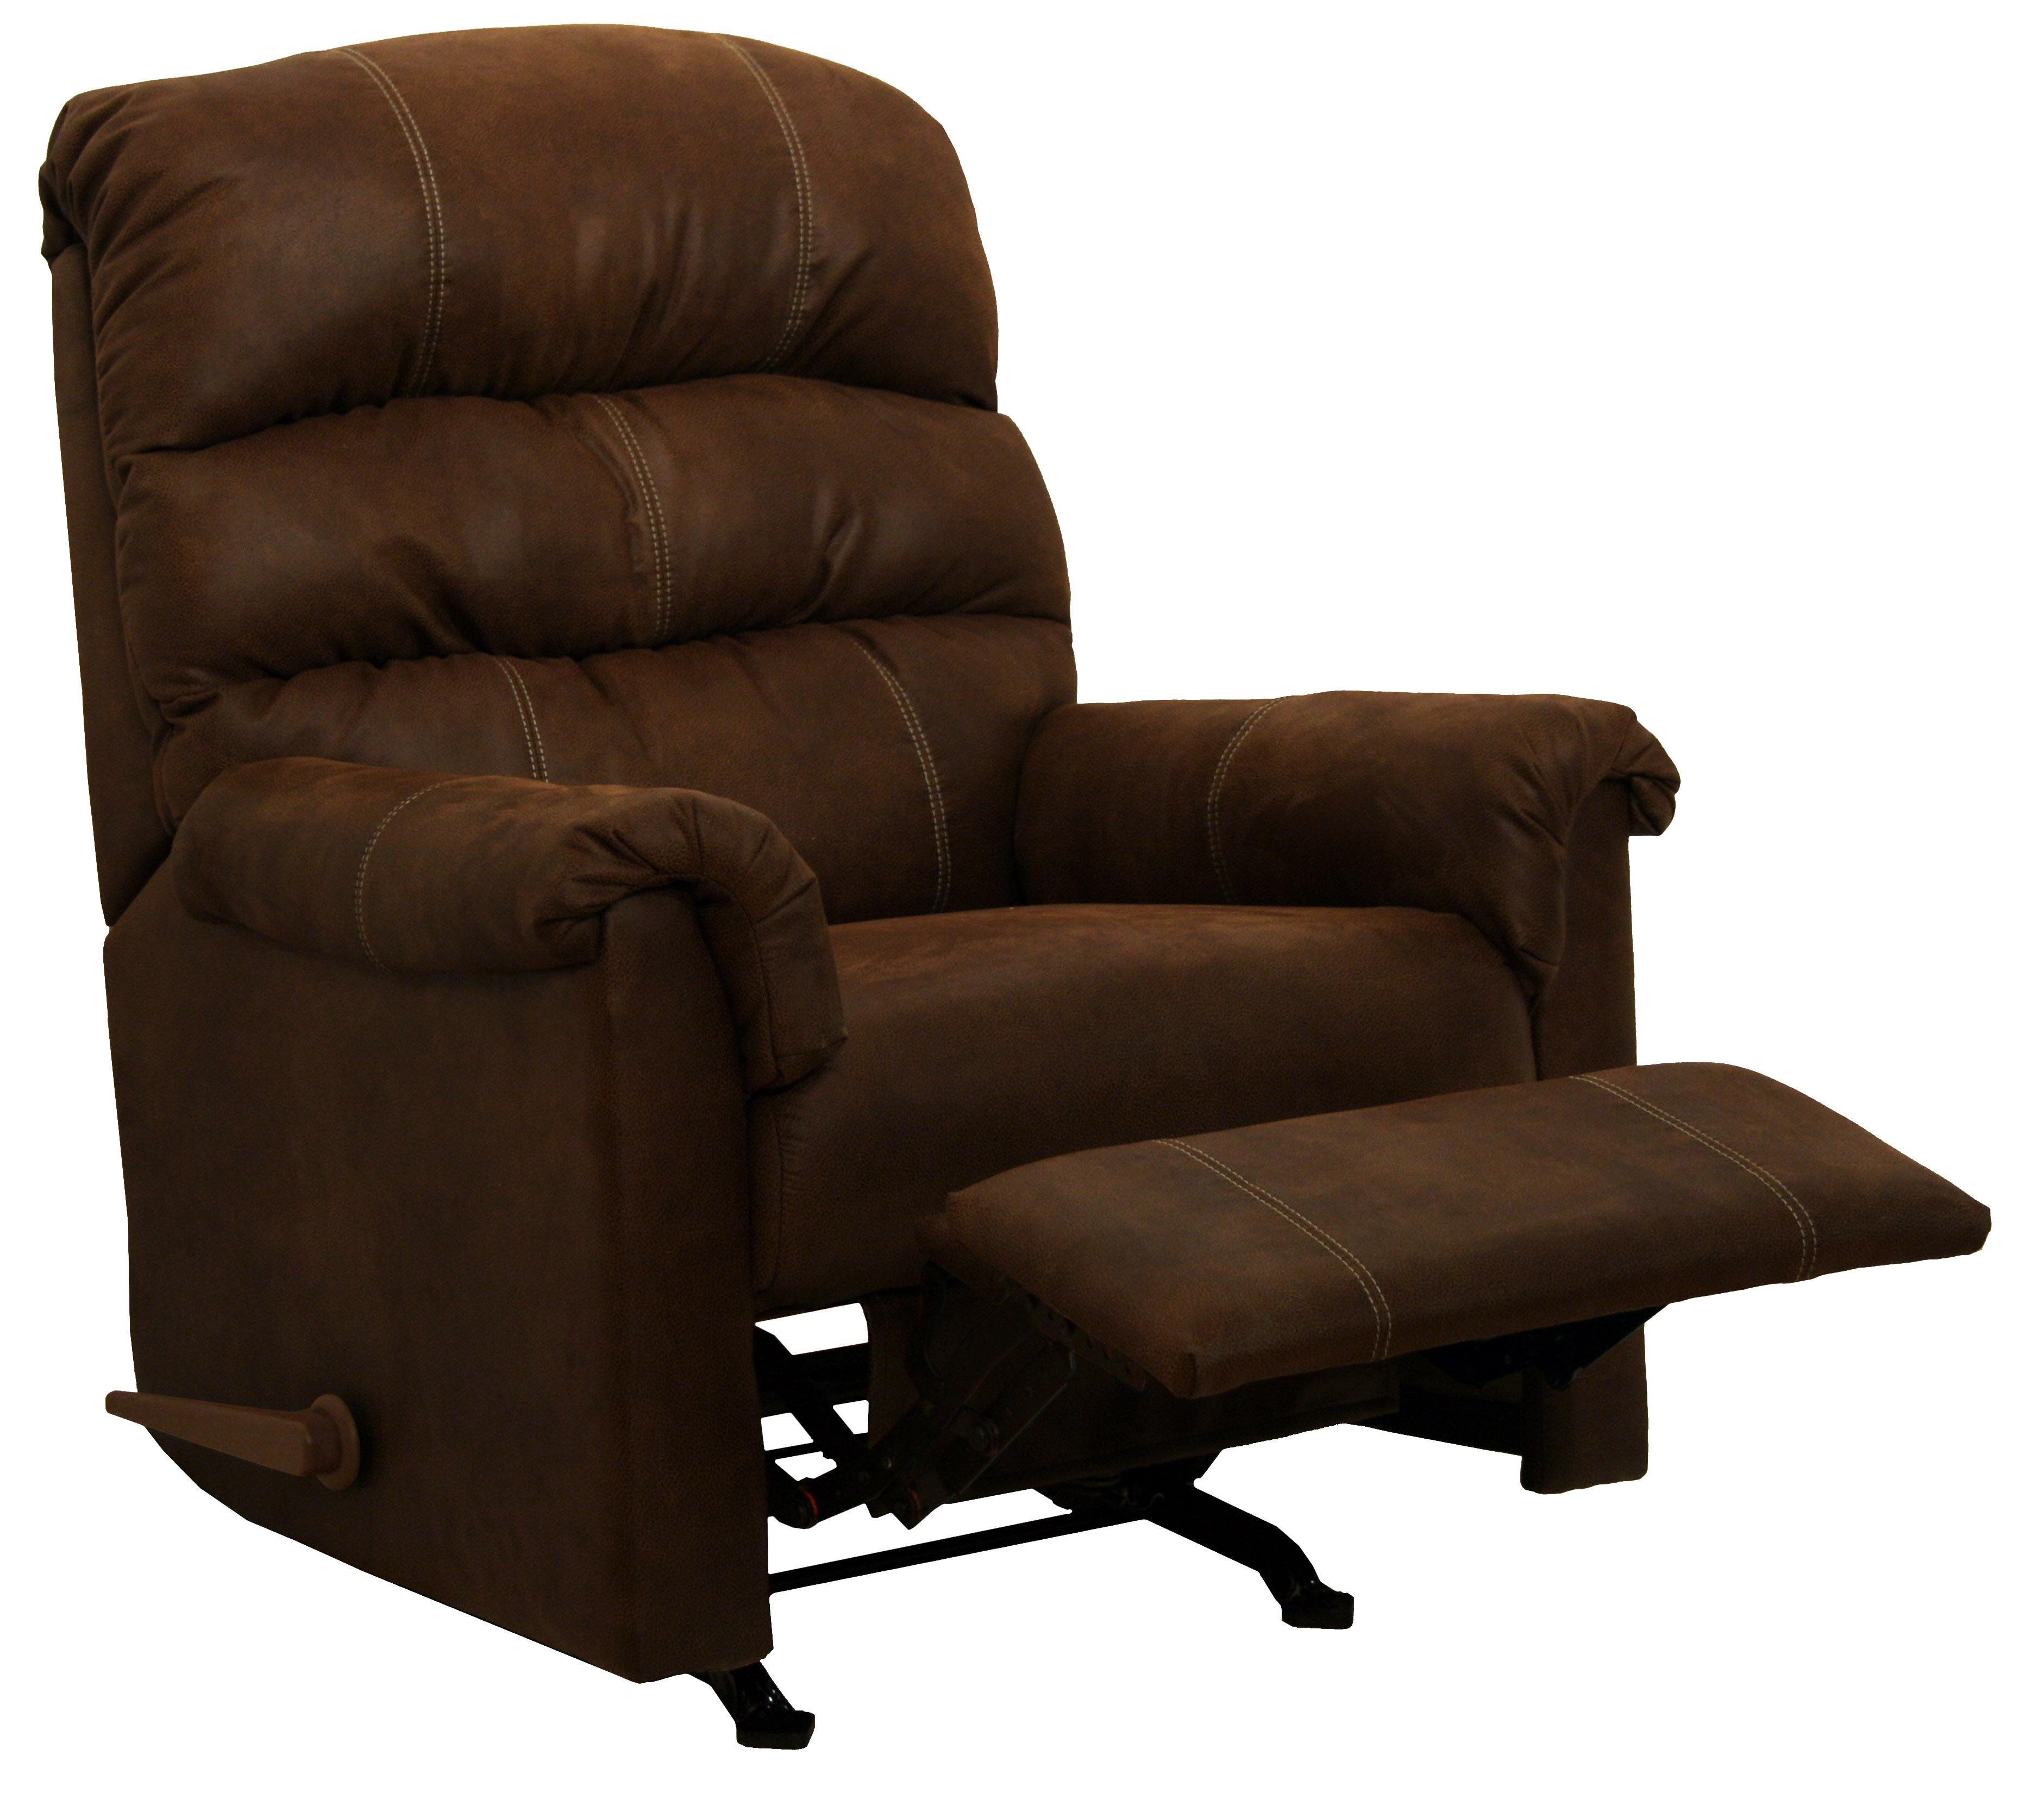 Catnapper Motion Chairs And Recliners Capri Rocker Recliner In Chocolate    Item Number: 4273